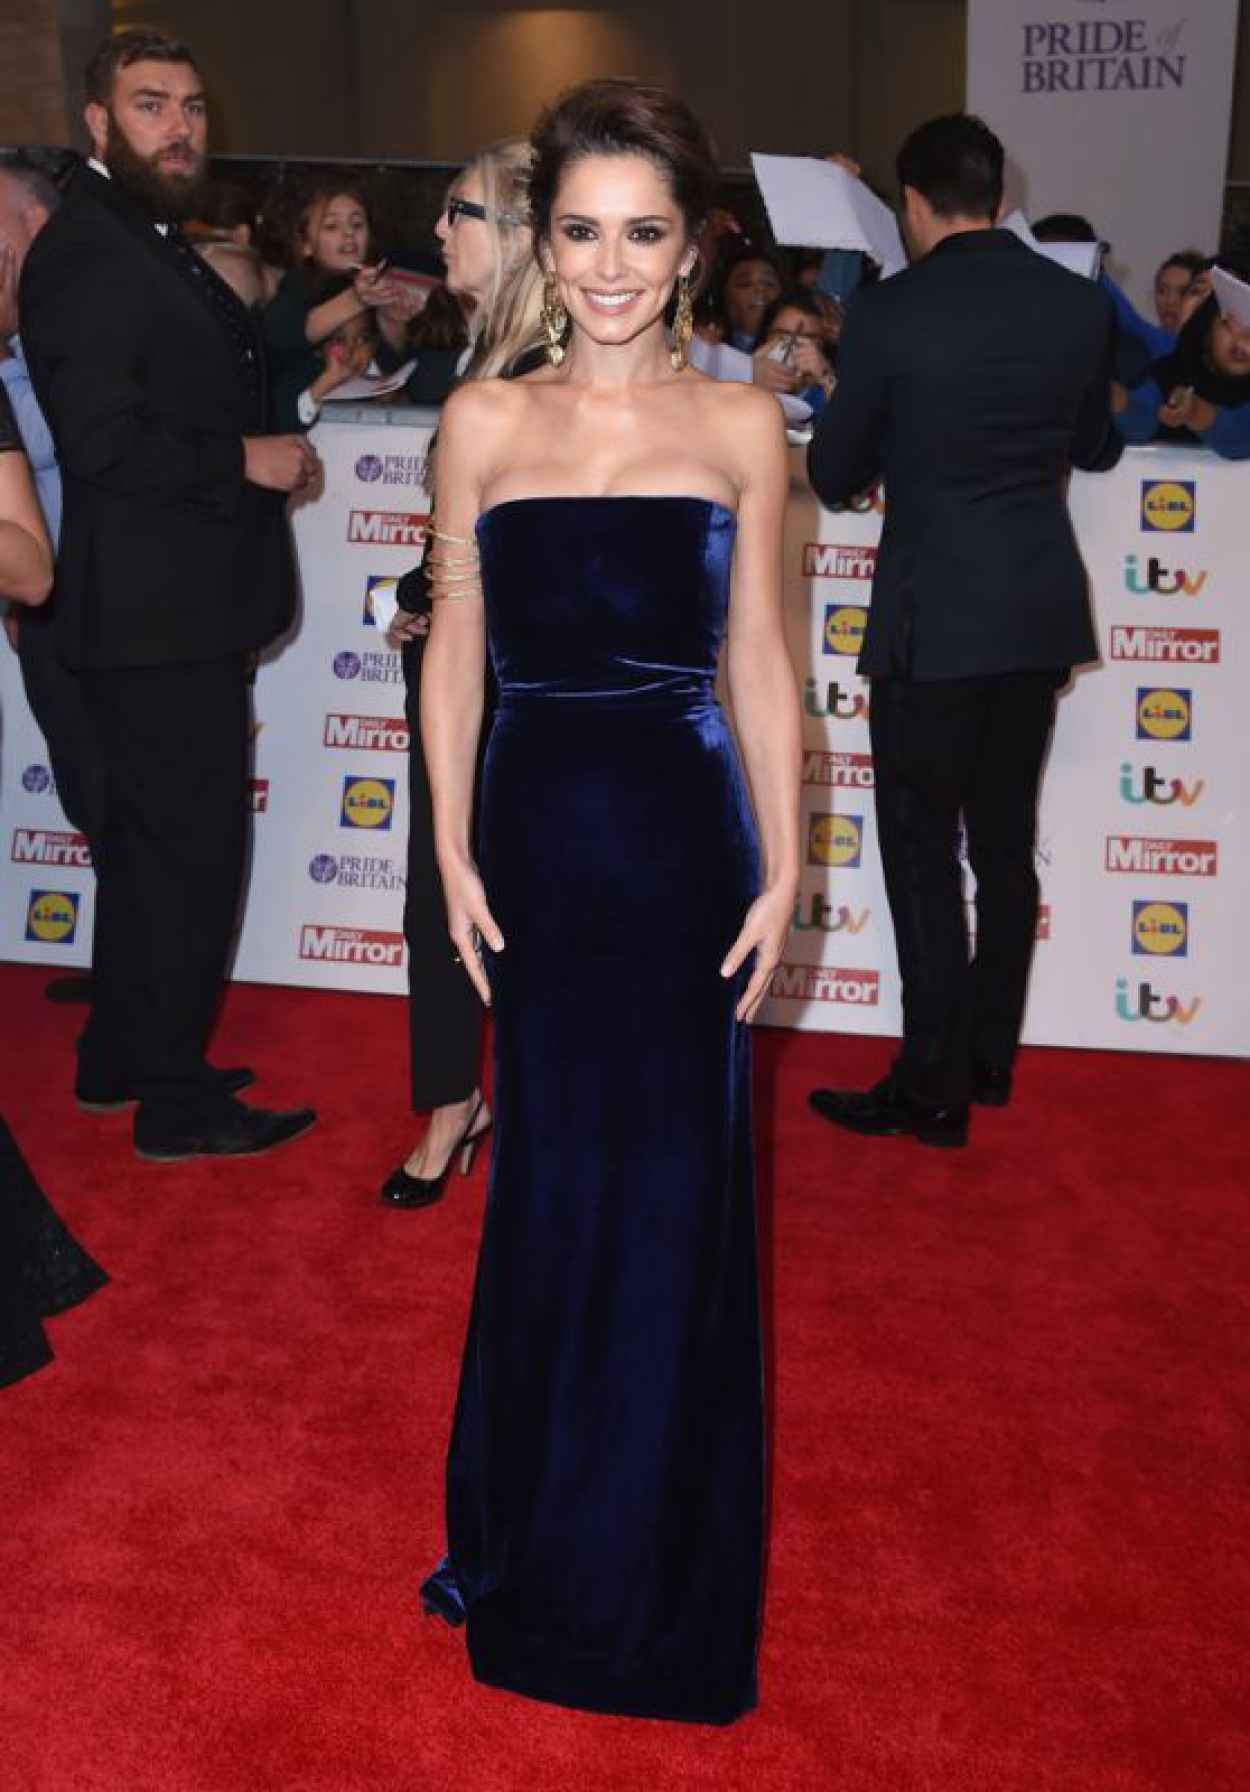 Cheryl Fernandez-Versini - Pride of Britain Awards 2015 in London-1